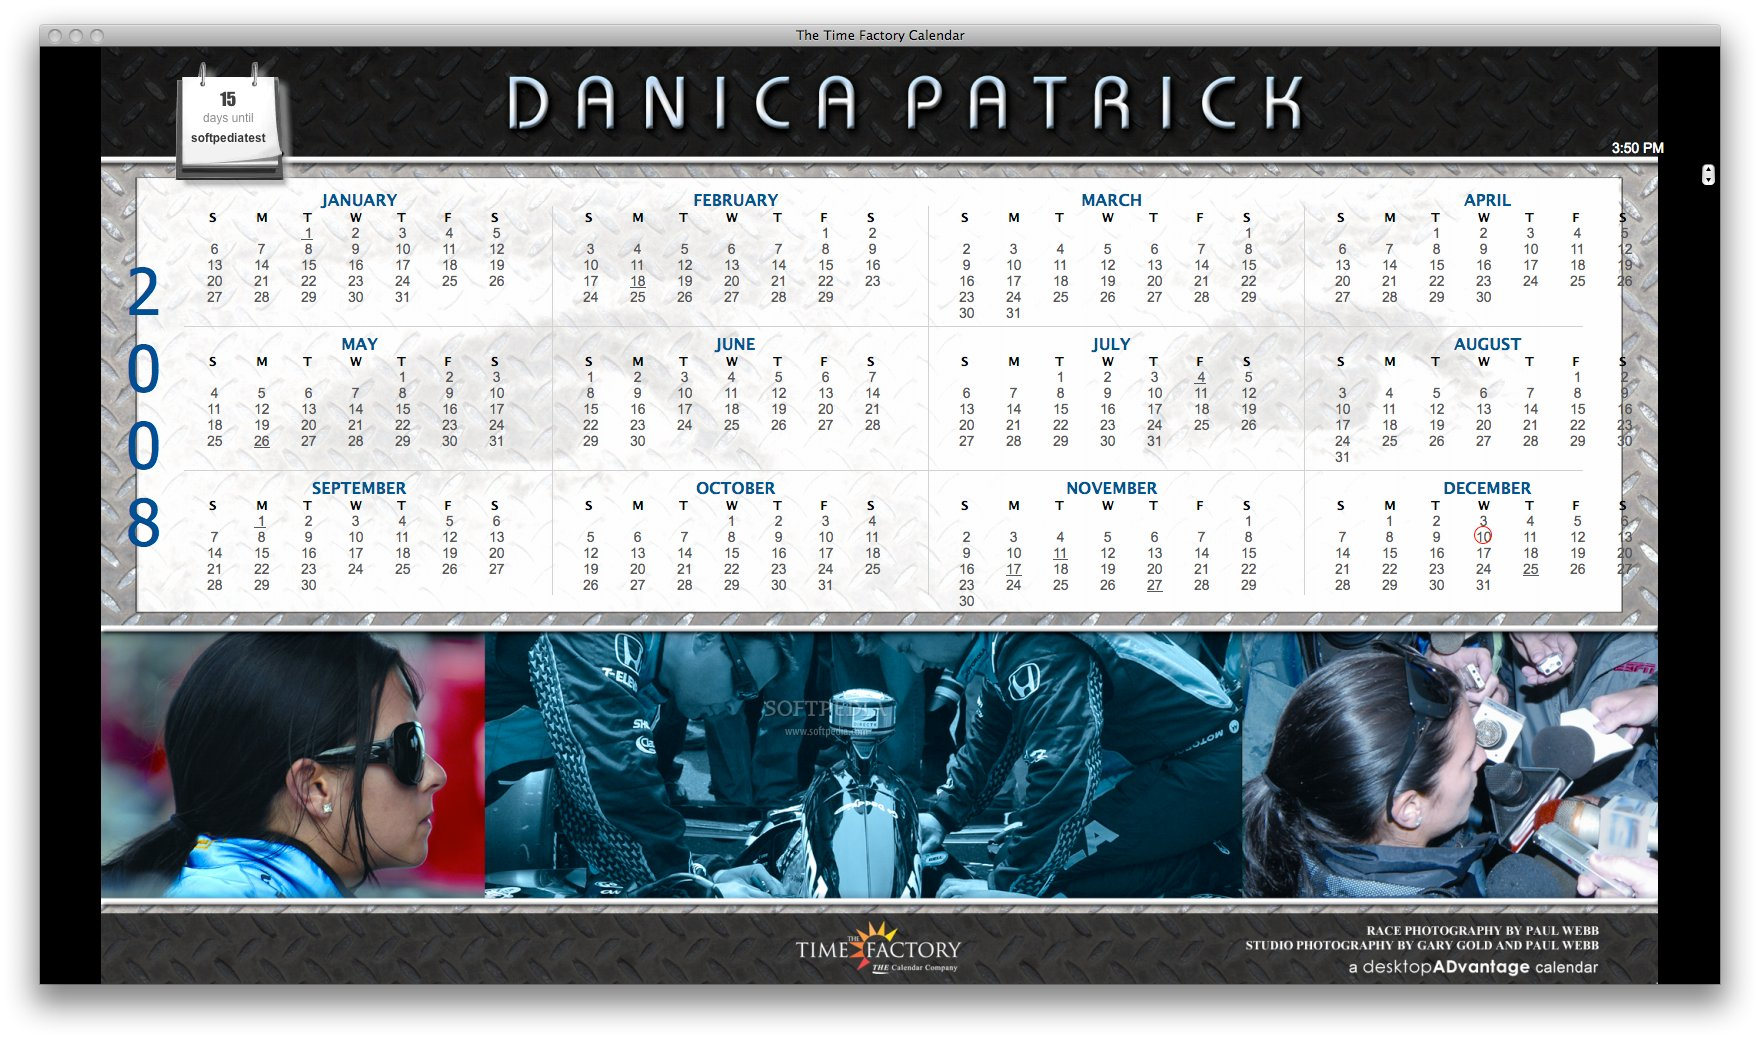 Danica Patrick Calendar screenshot 1 - The main window where you can see images featuring Danica Patrick.